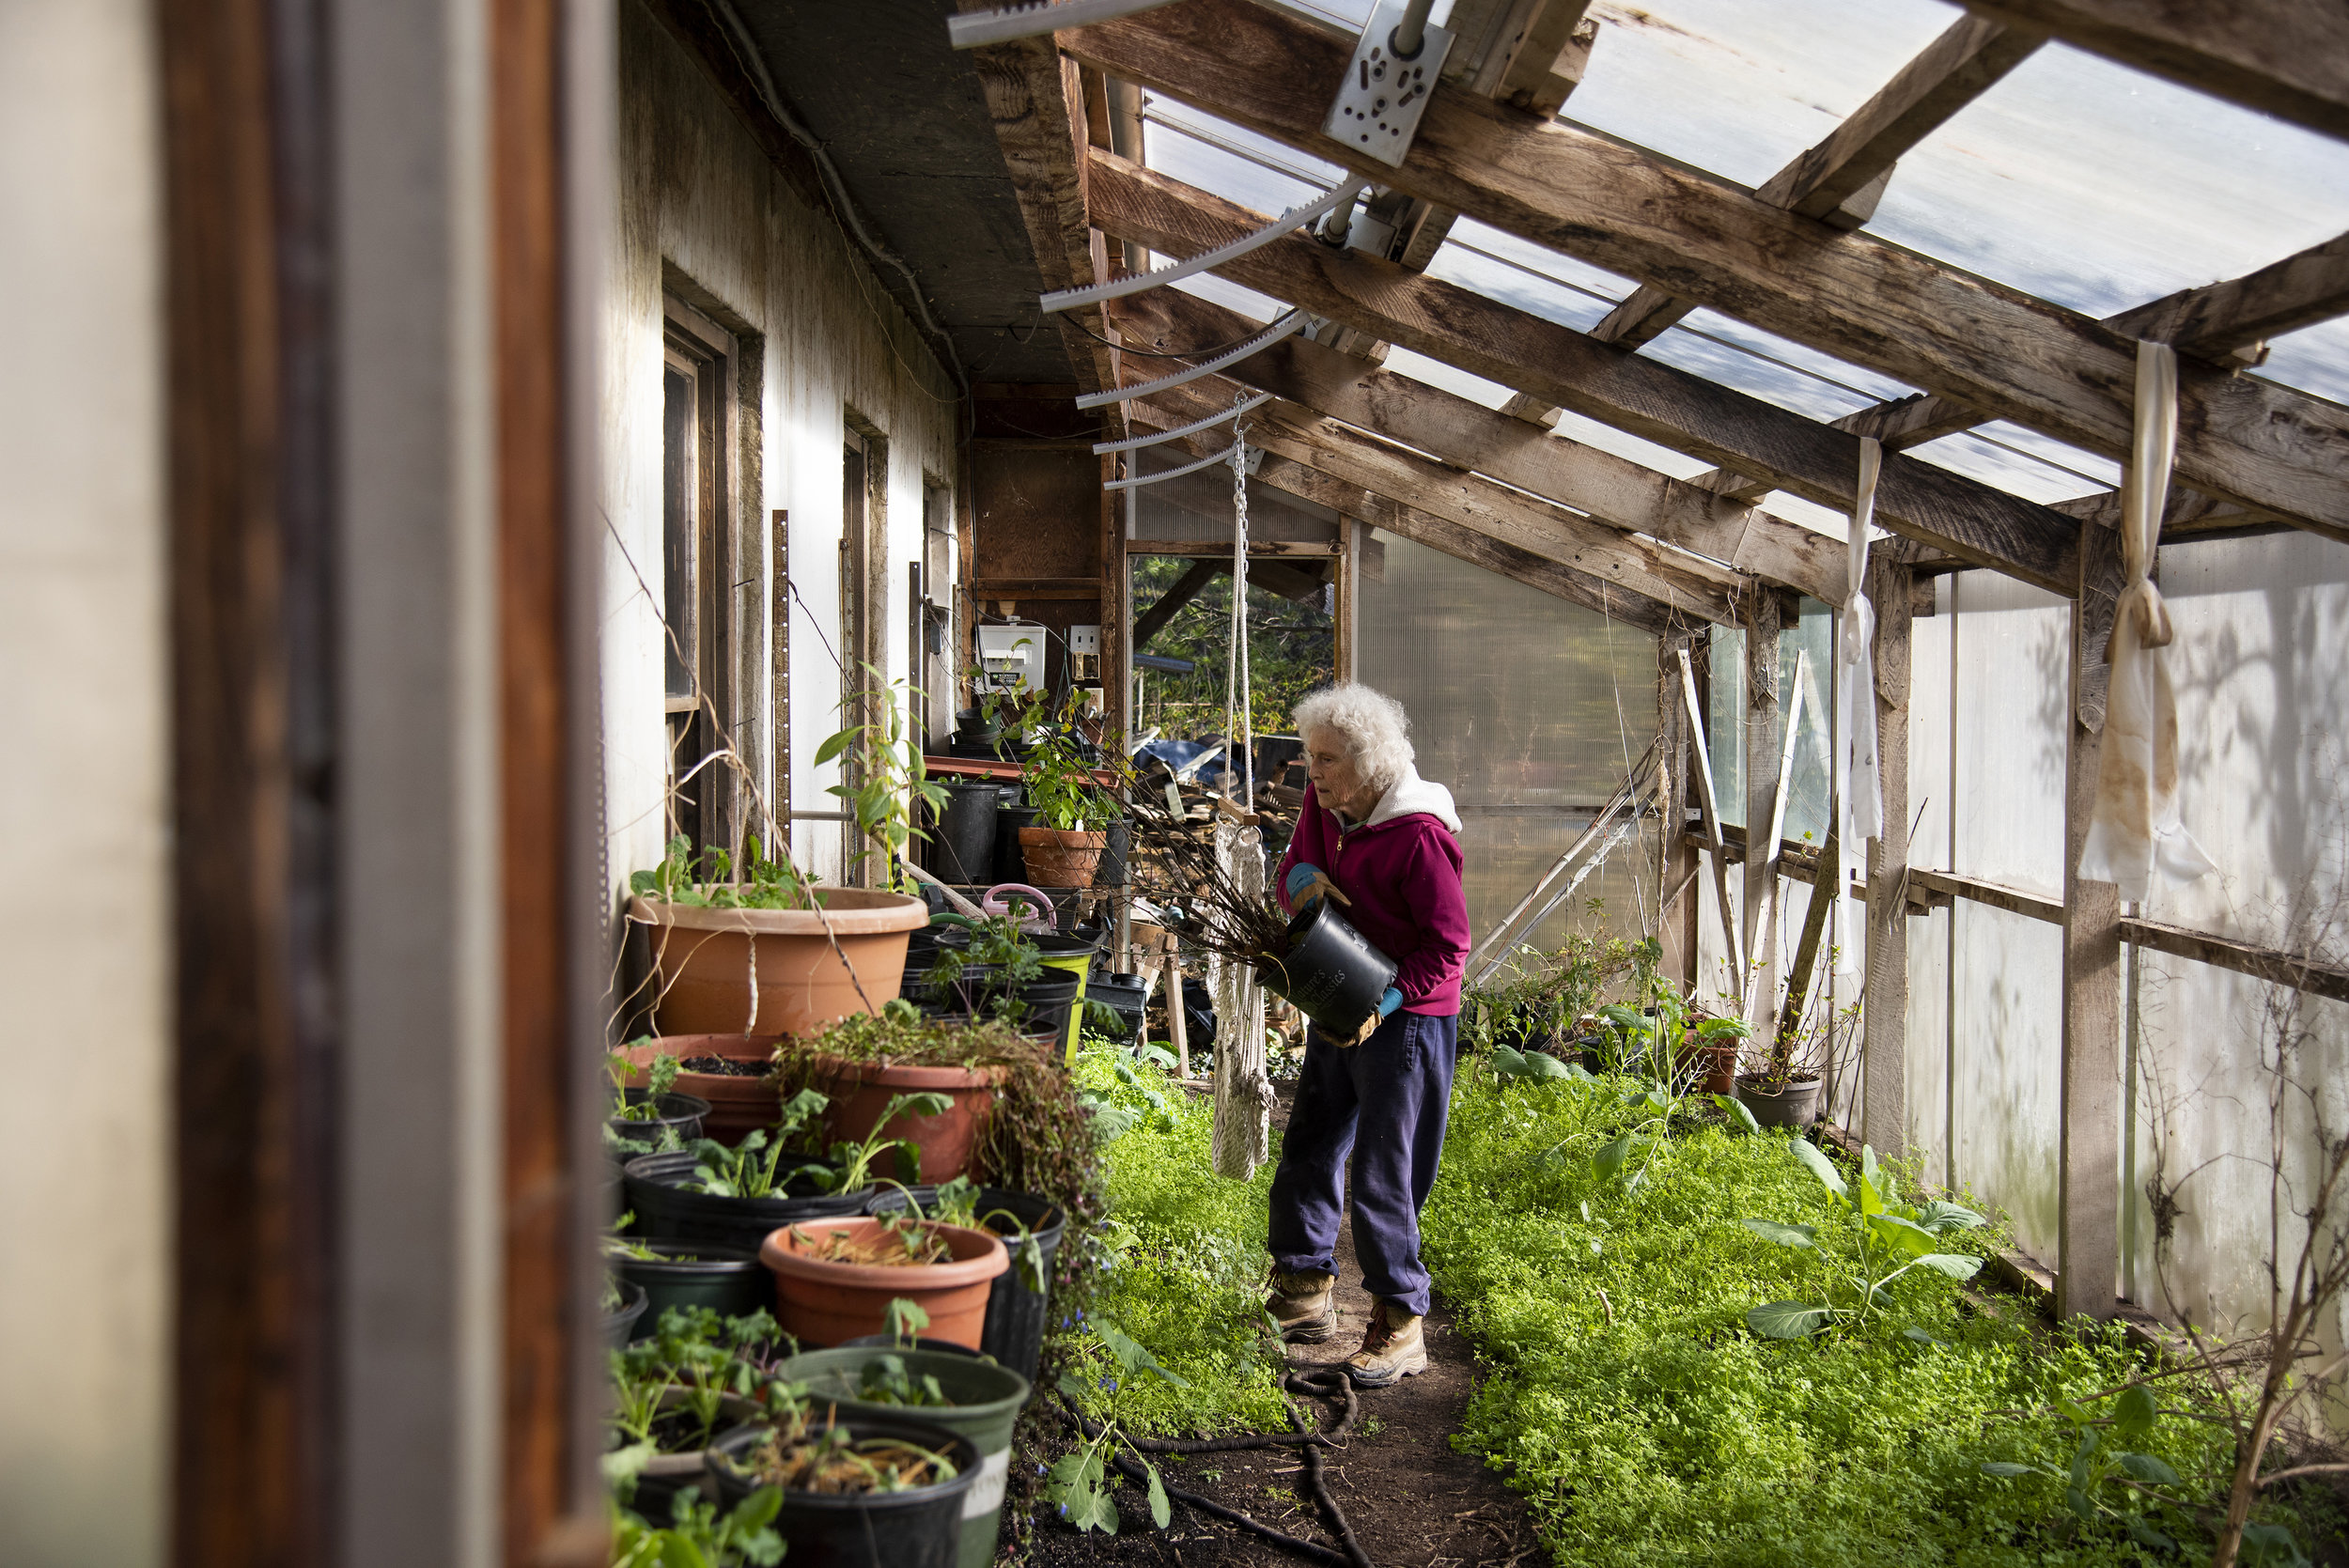 Jean Forsberg moves plants from her outside deck to her personal greenhouse for the winter. Forsberg grows many vegetables, like kale, that she and her husband eat throughout the year. She uses a greenhouse attached to her home opposed to the community greenhouses.